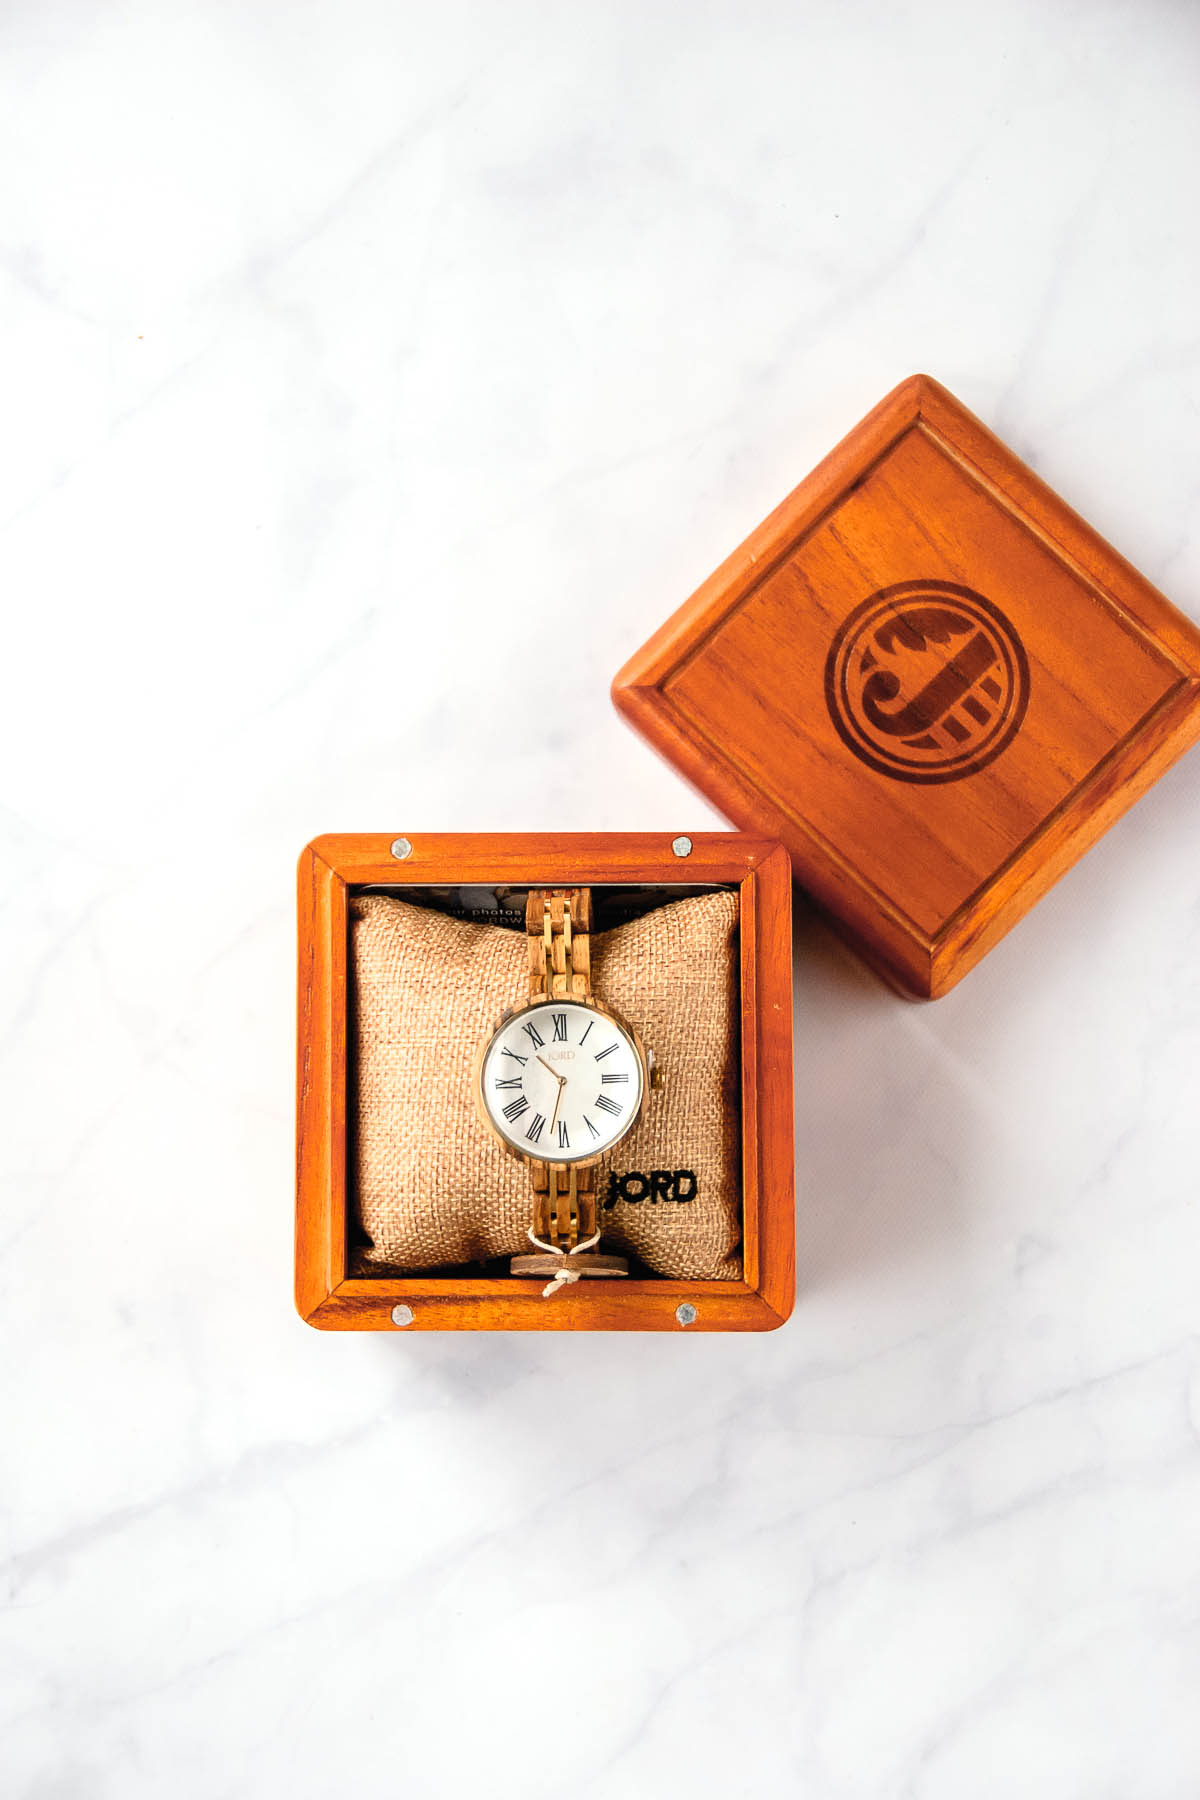 The Cassia Zebra and Ivory watch made by JORD wood watch in its wood box on a marble countertop.